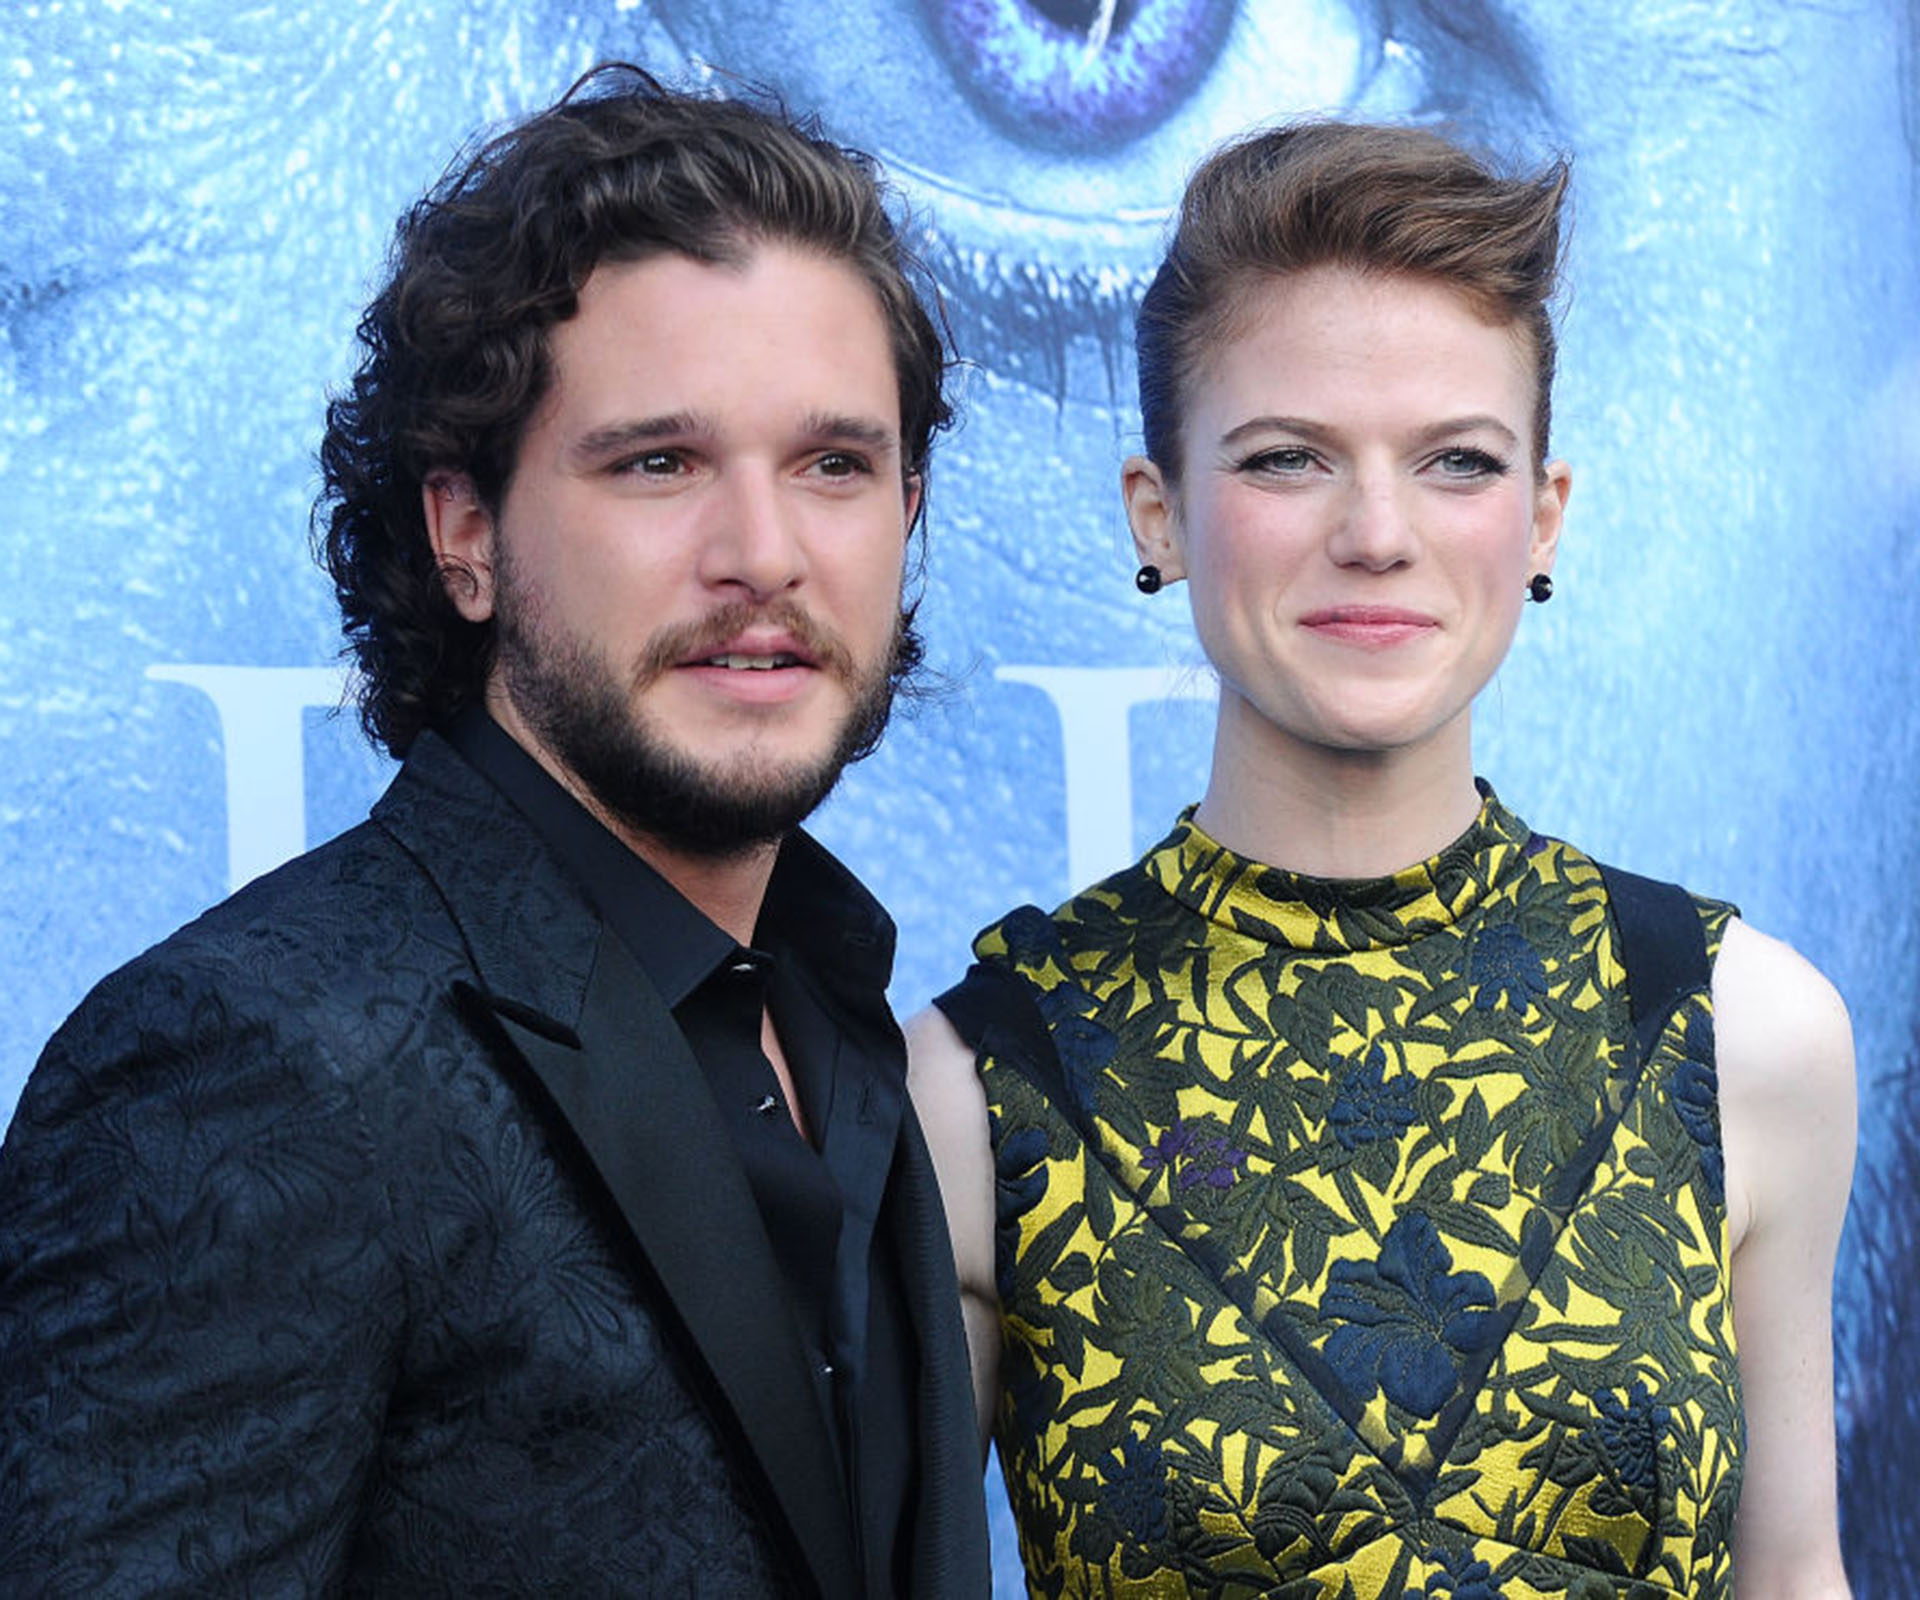 Wait, Are 'Game of Thrones' Stars Kit Harington and Rose Leslie Engaged?